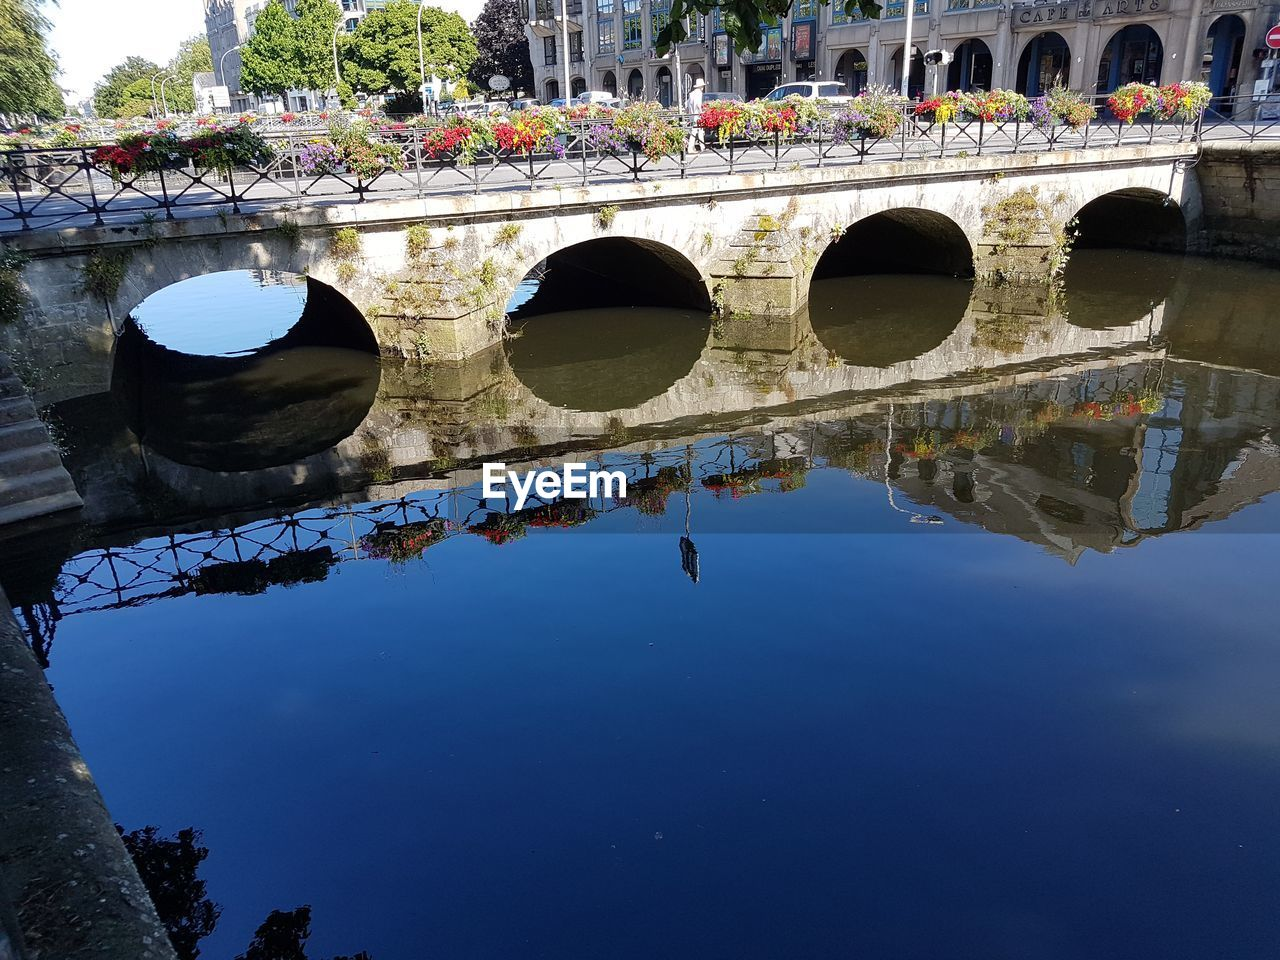 water, reflection, built structure, architecture, bridge, nature, arch, connection, bridge - man made structure, waterfront, day, arch bridge, river, building exterior, no people, transportation, sky, blue, outdoors, reflecting pool